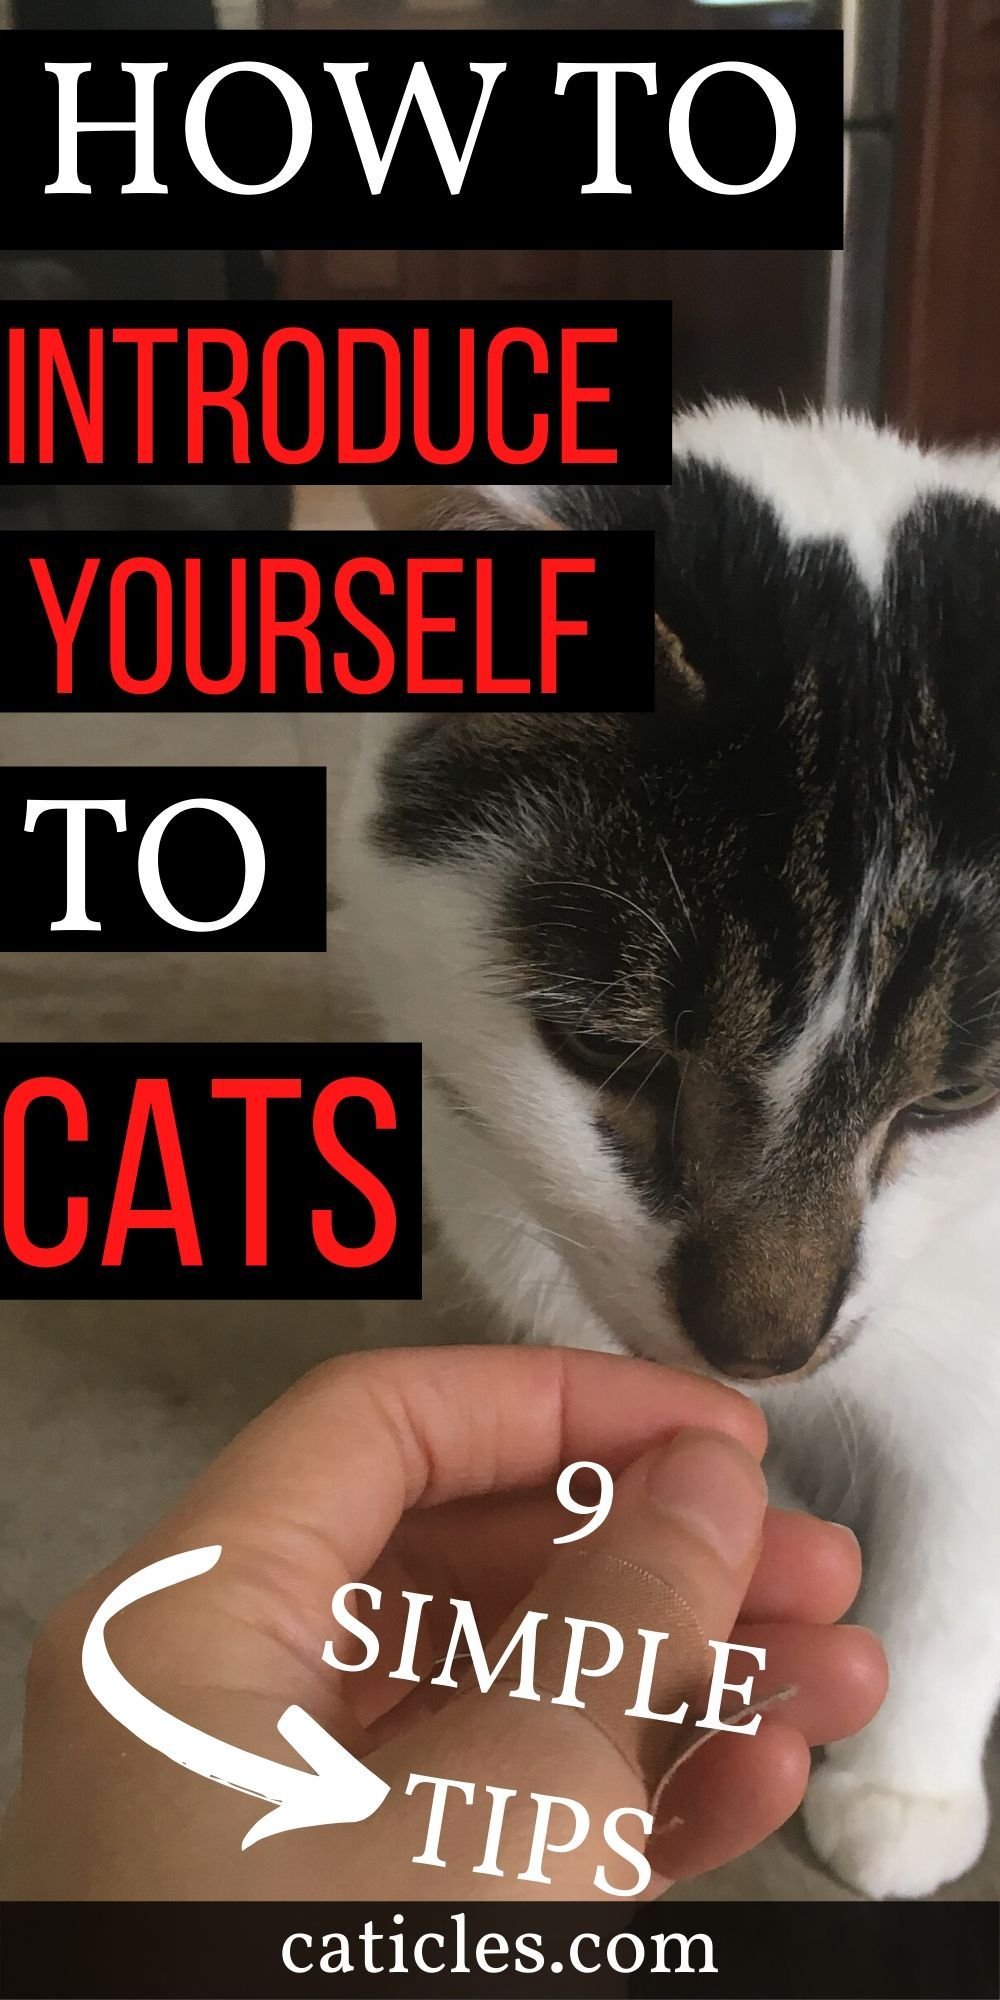 How To Approach A Cat For The First Time In 9 Successful Steps In 2020 How To Introduce Yourself Cat Care Tips Cats